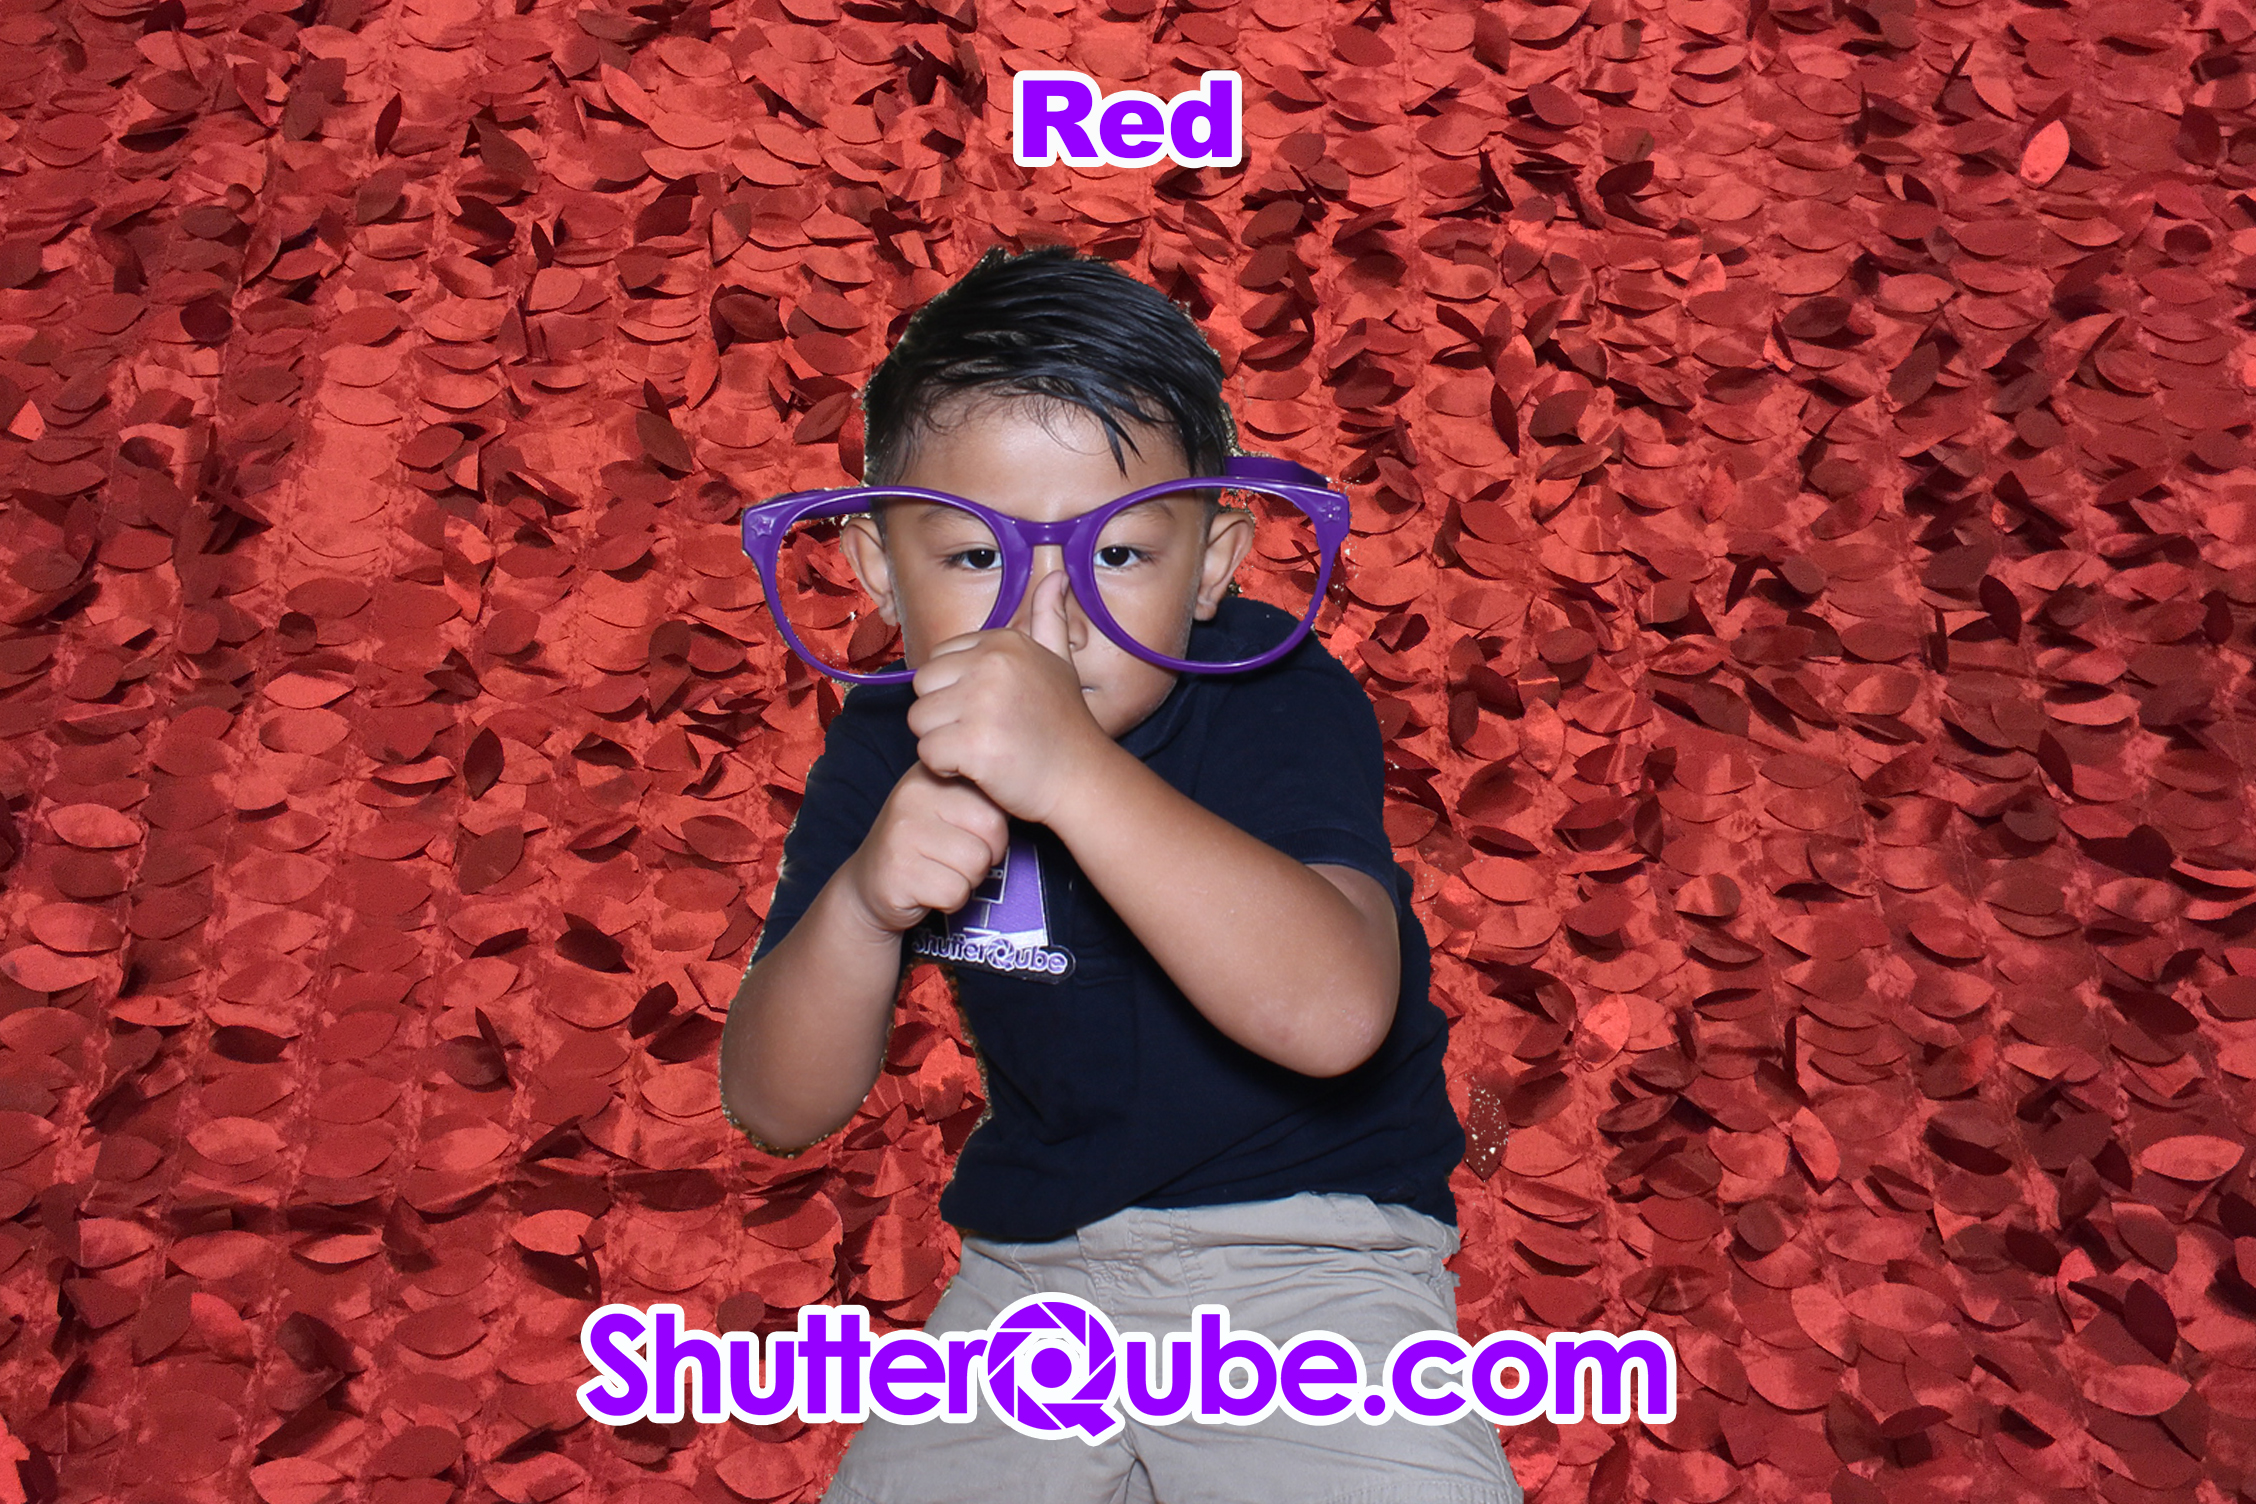 red leaf photo booth backdrop